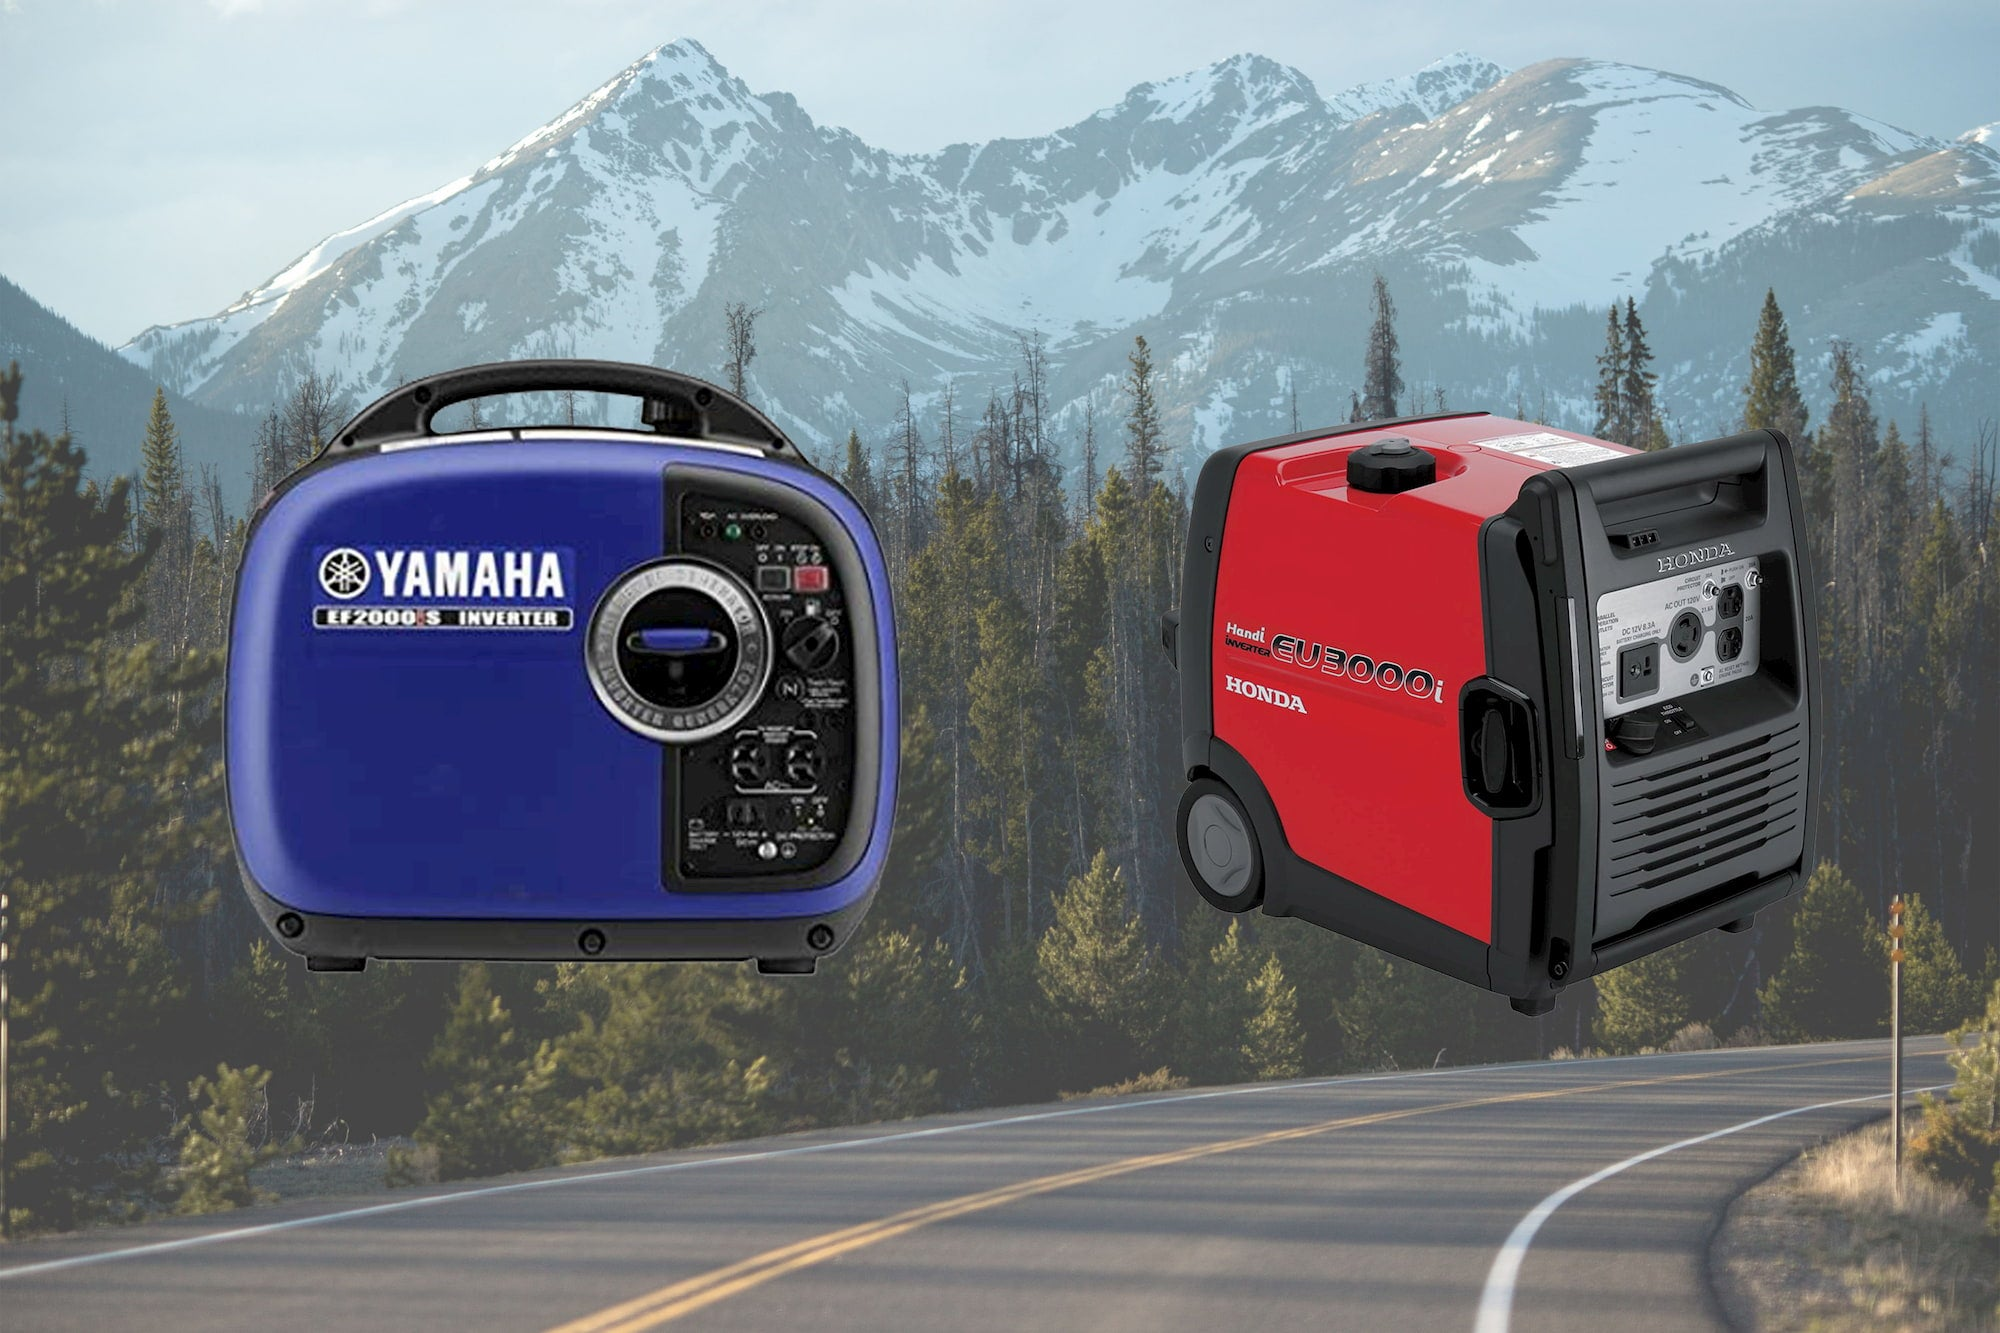 Generator product images.